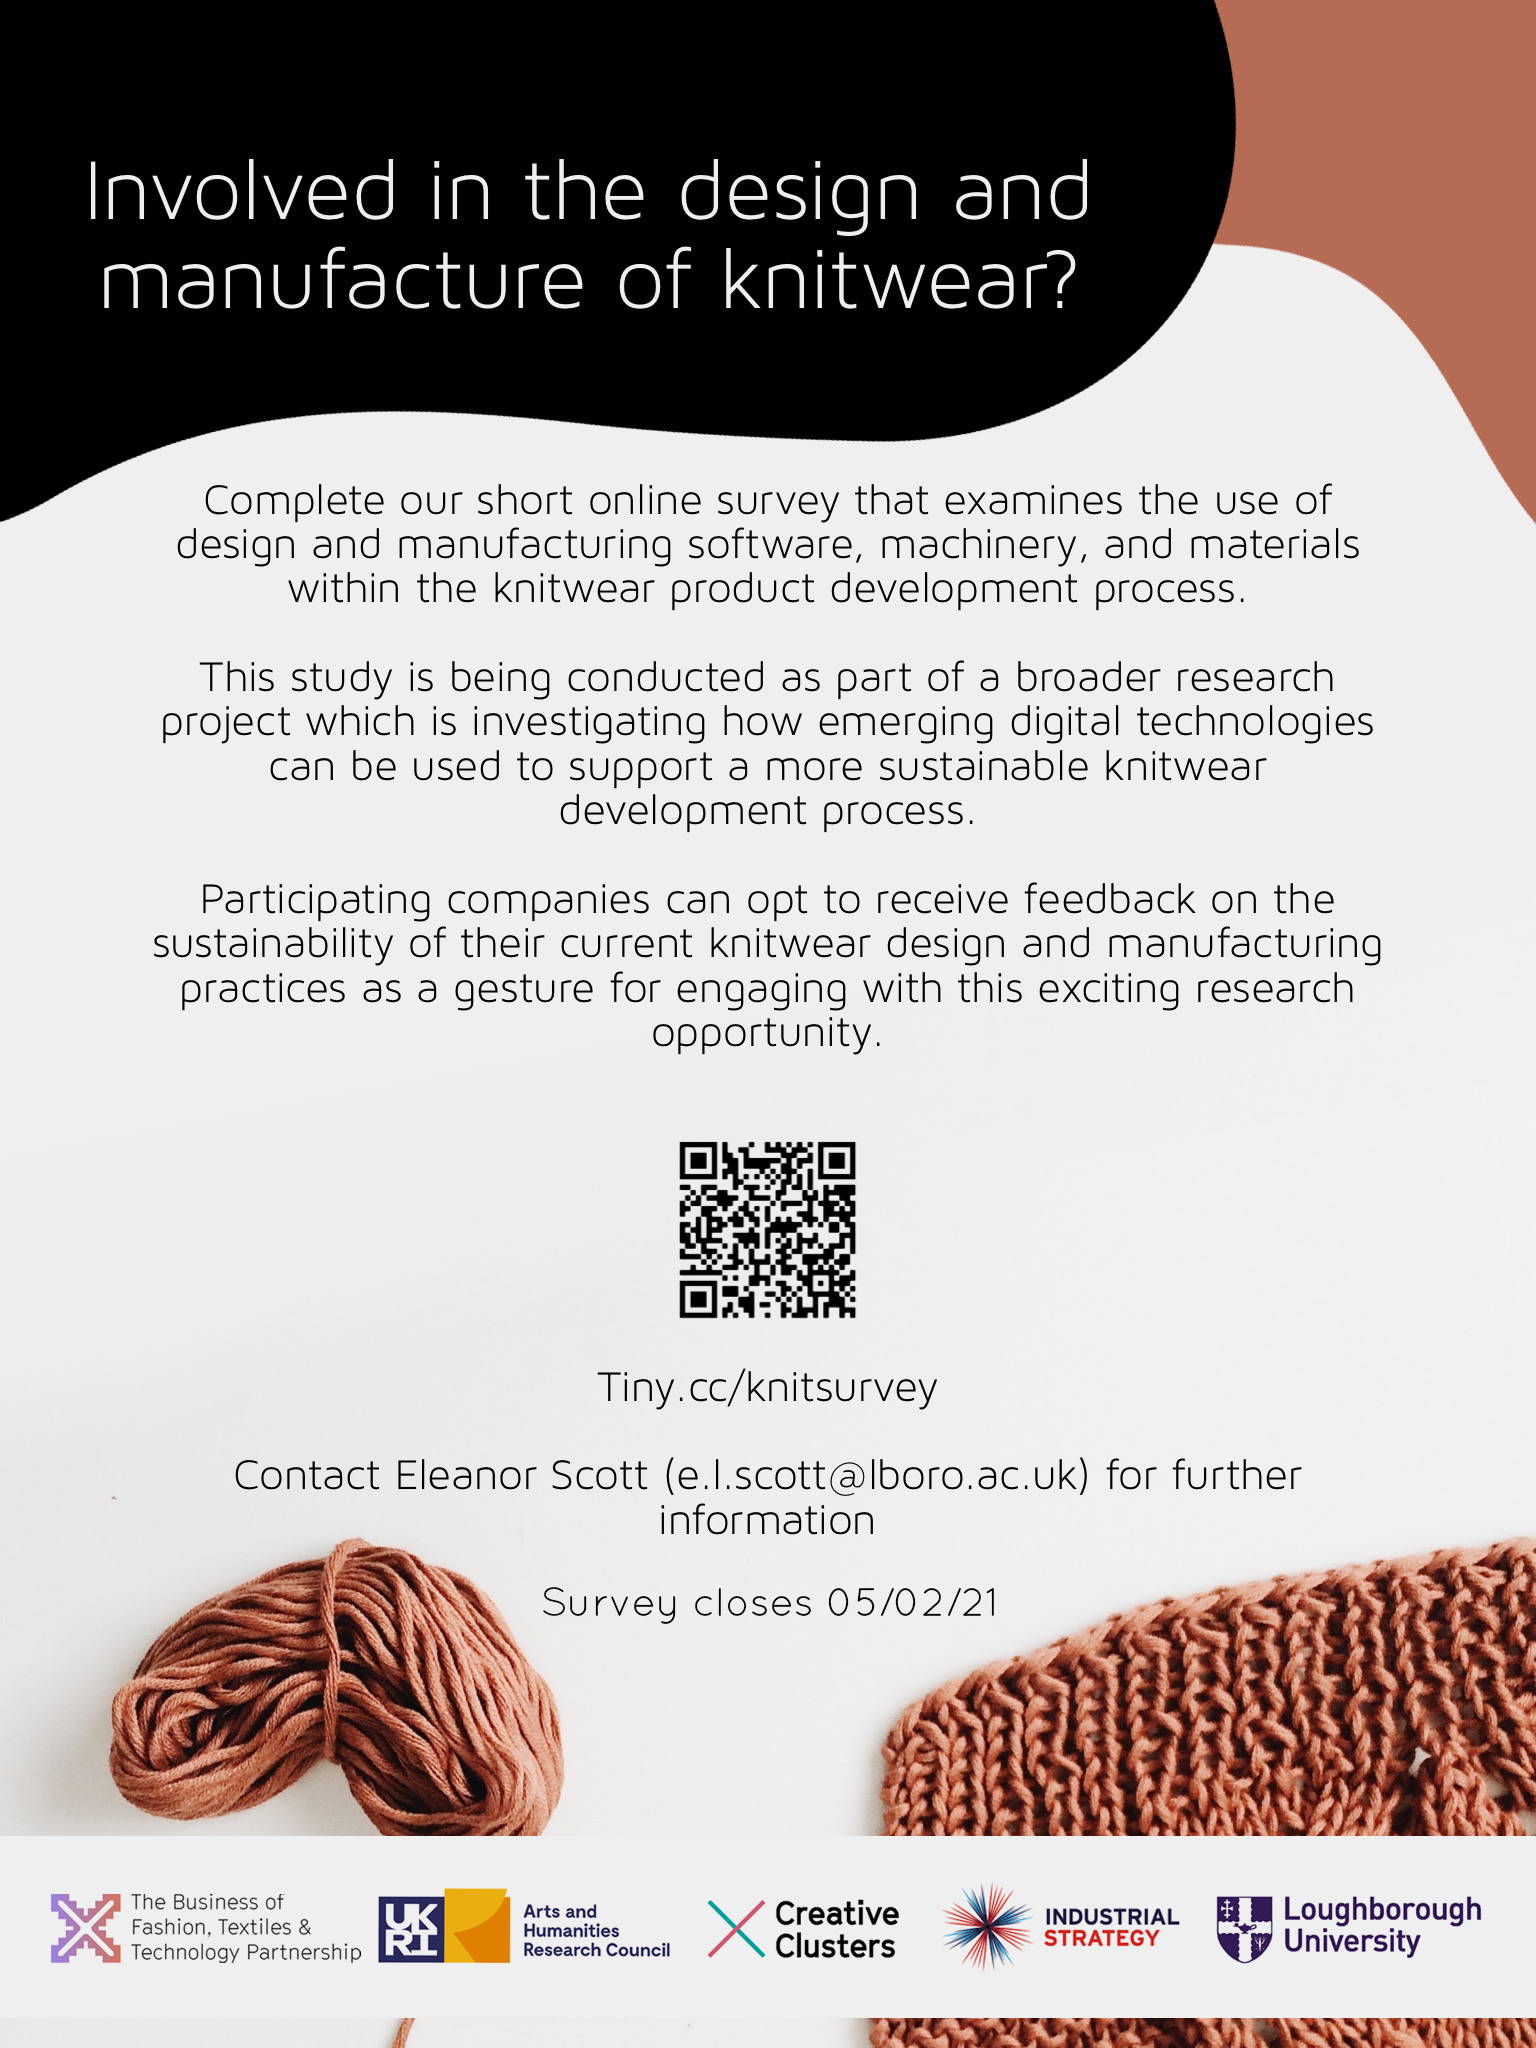 Flyer to take part in knitwear survey